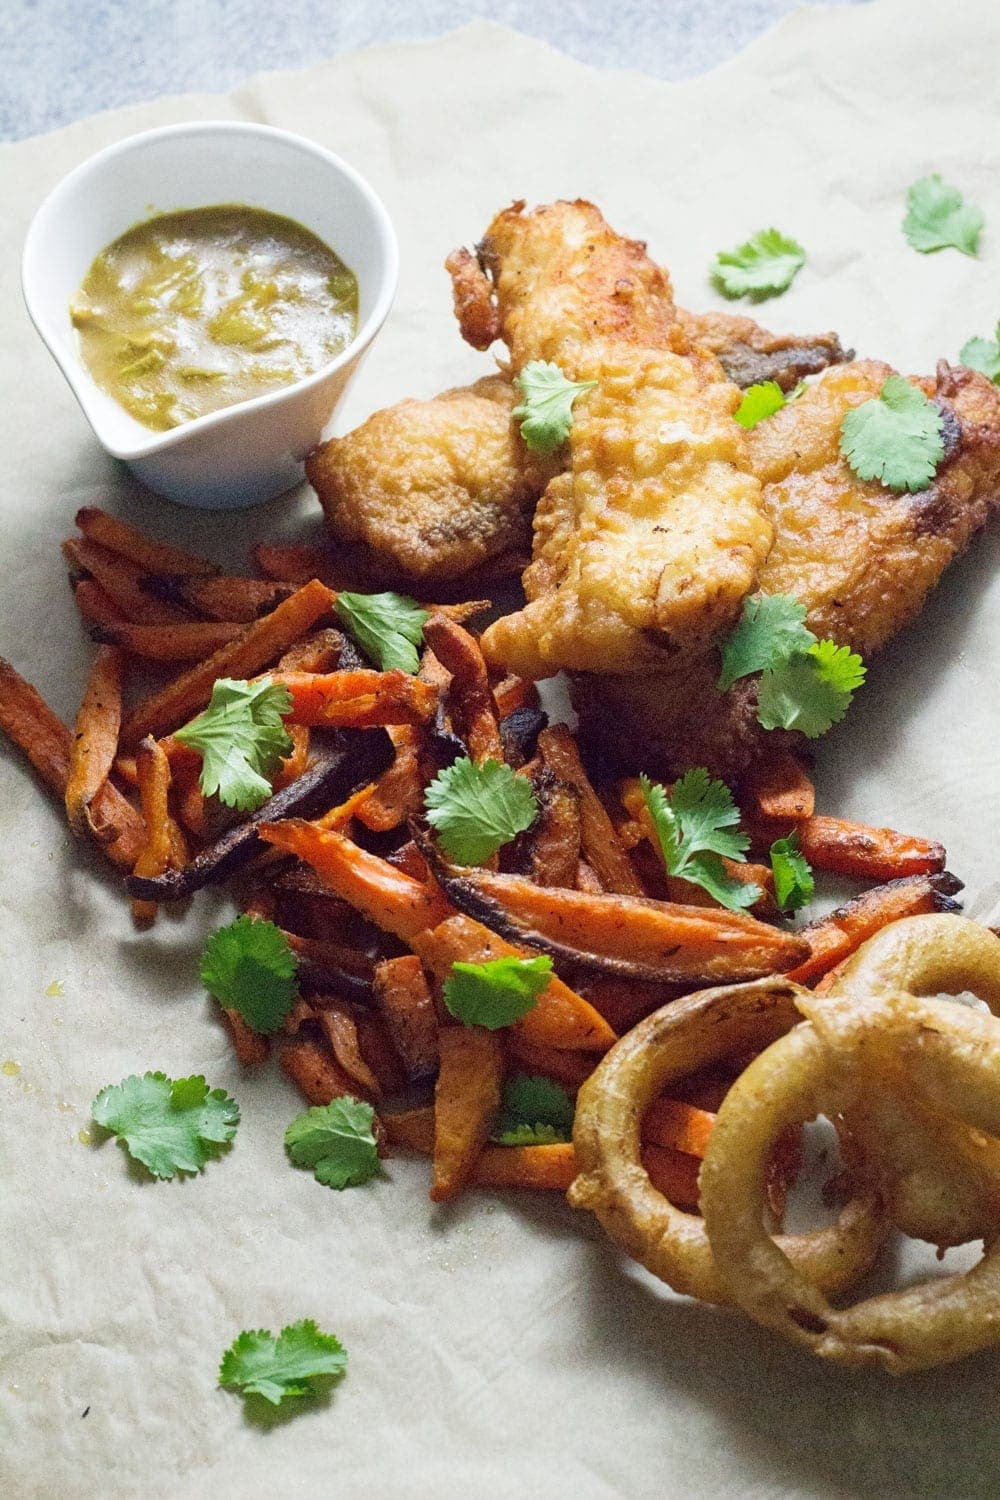 This Caribbean style fish and chips is made up of rum battered fish, sweet potato fries, jerk onion rings and an incredible coconut curry sauce!